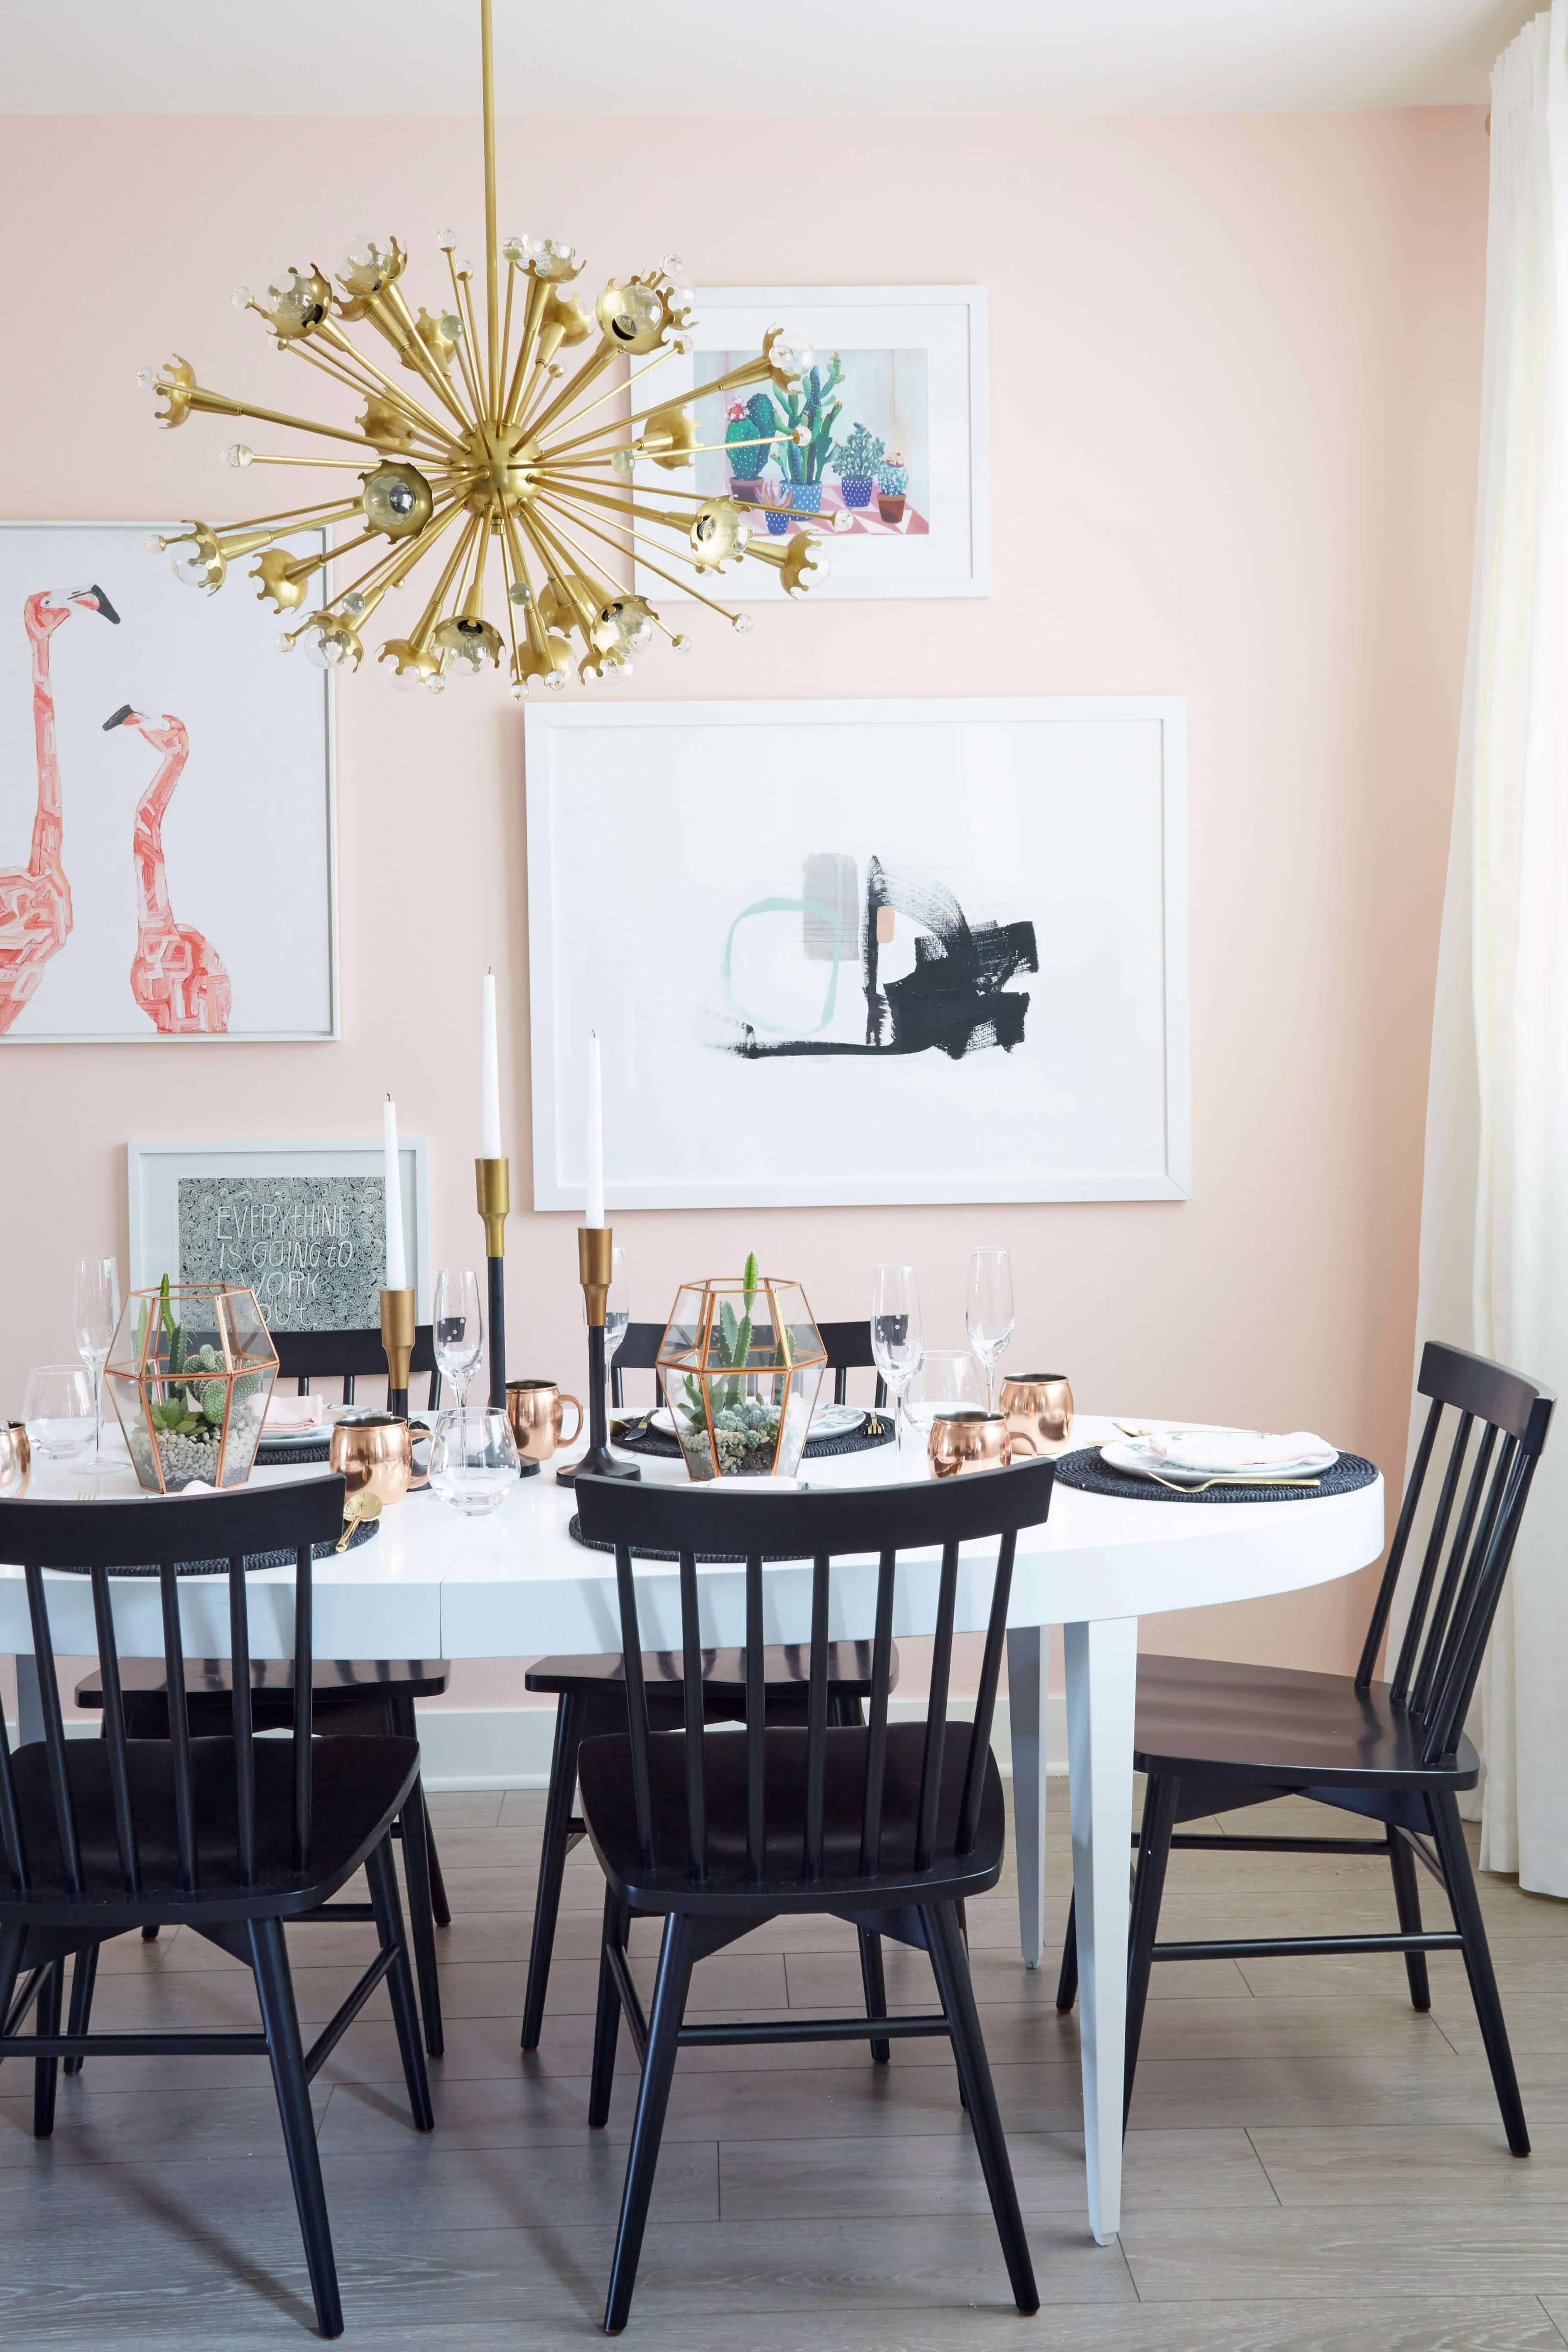 Nicolette Mason_Dining Room_Glam_Pink_Lux_Emily Henderson_Dining Room